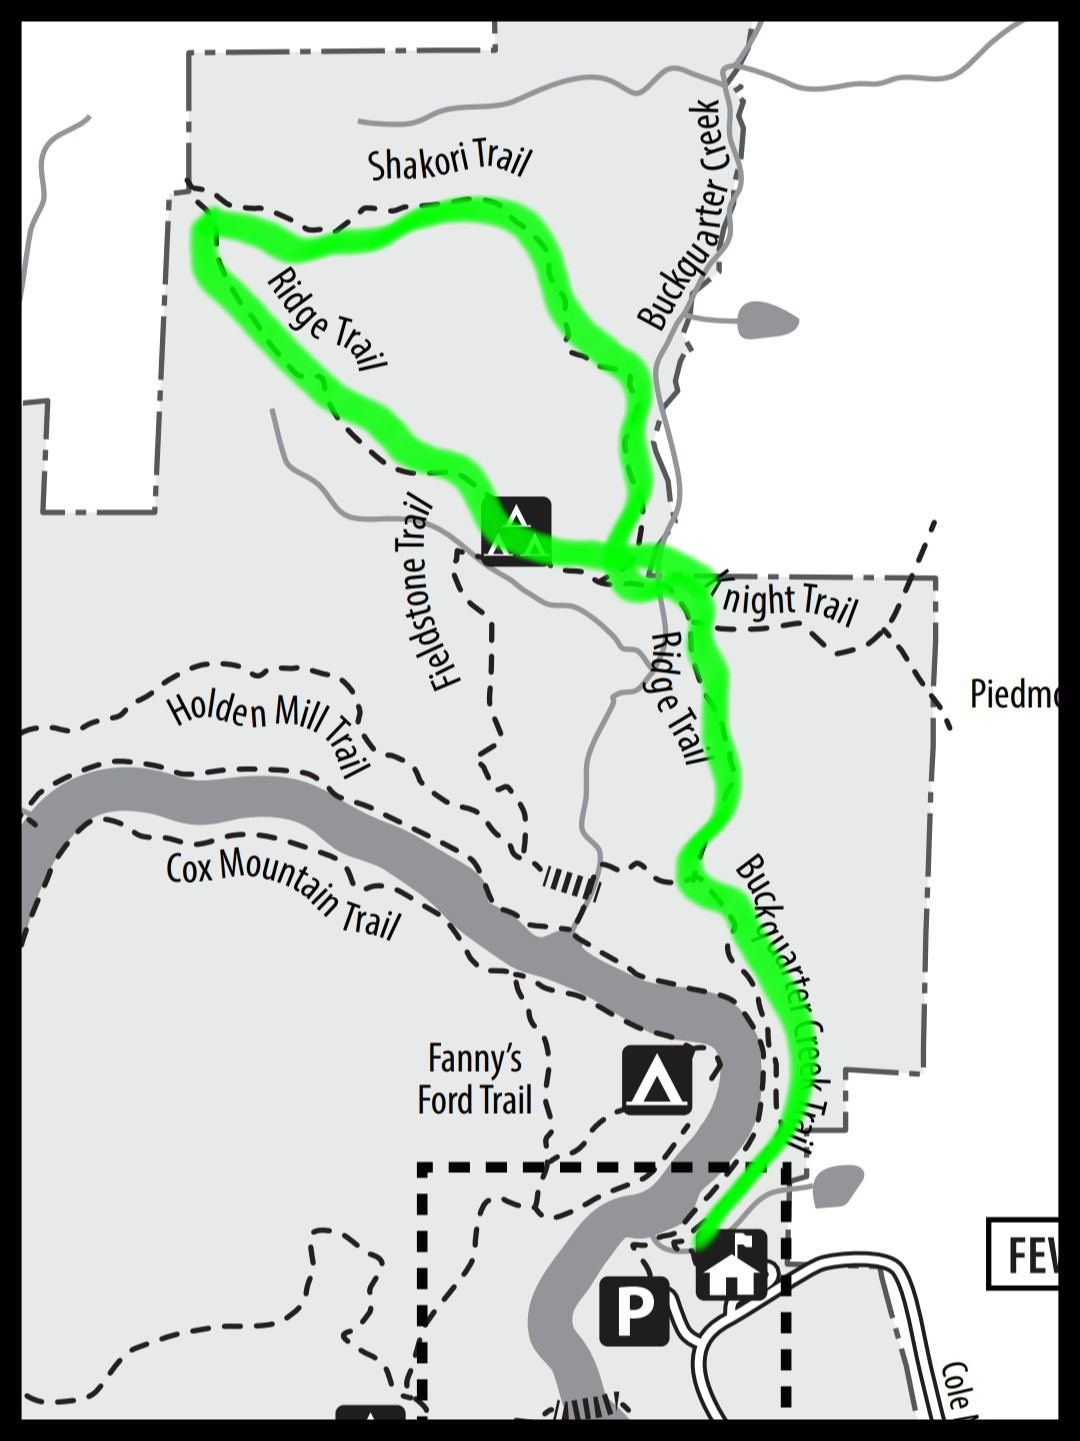 Map of Shakori Trail at Eno River State Park